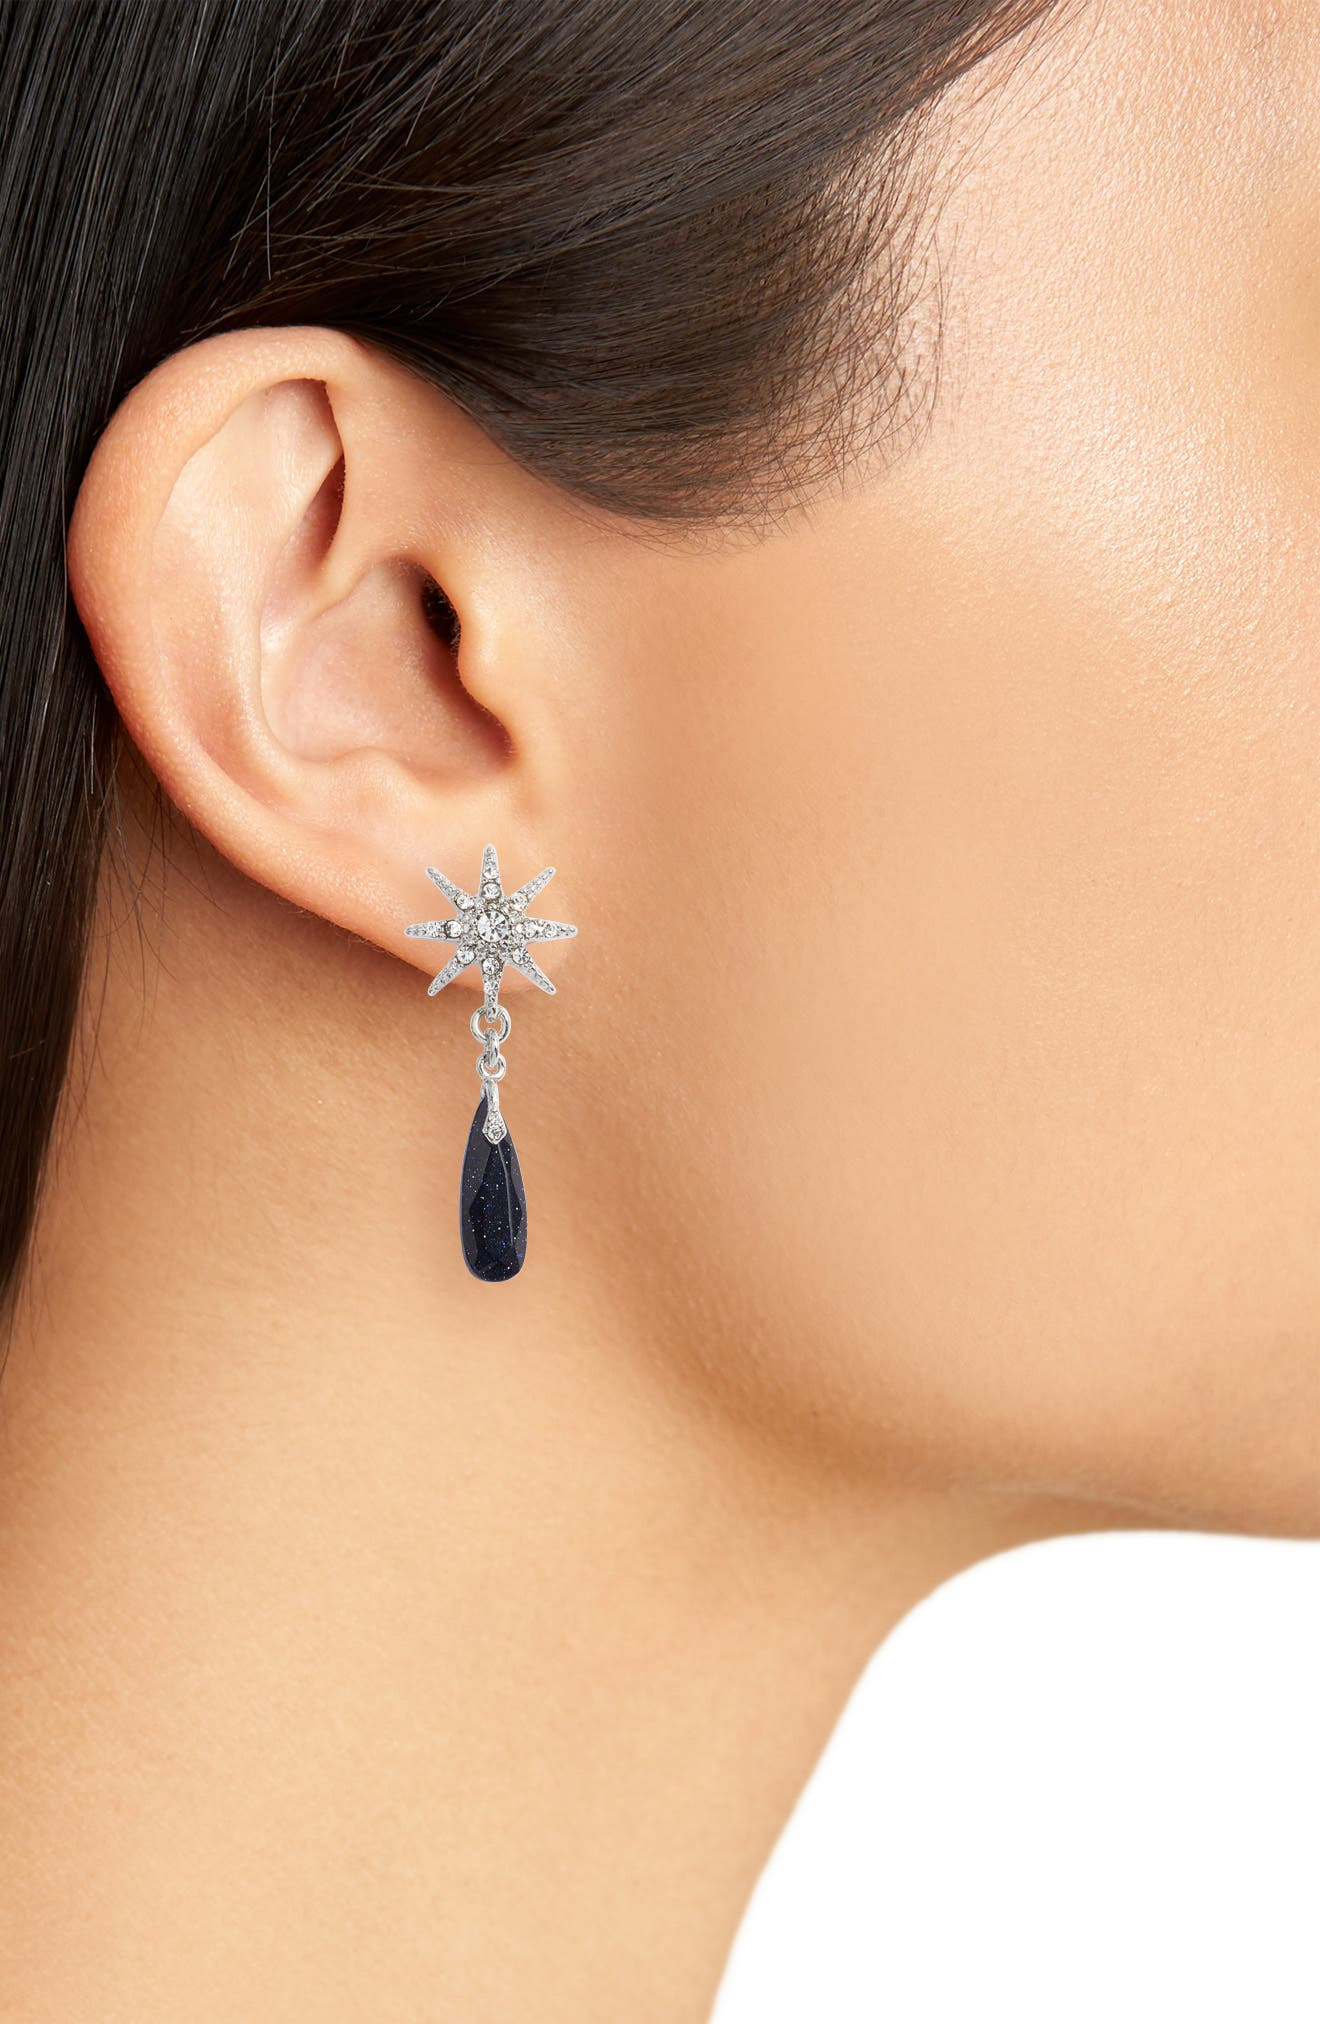 Imitation Pearl Drop Earrings,                             Alternate thumbnail 2, color,                             Silver/ Cry/ Blue